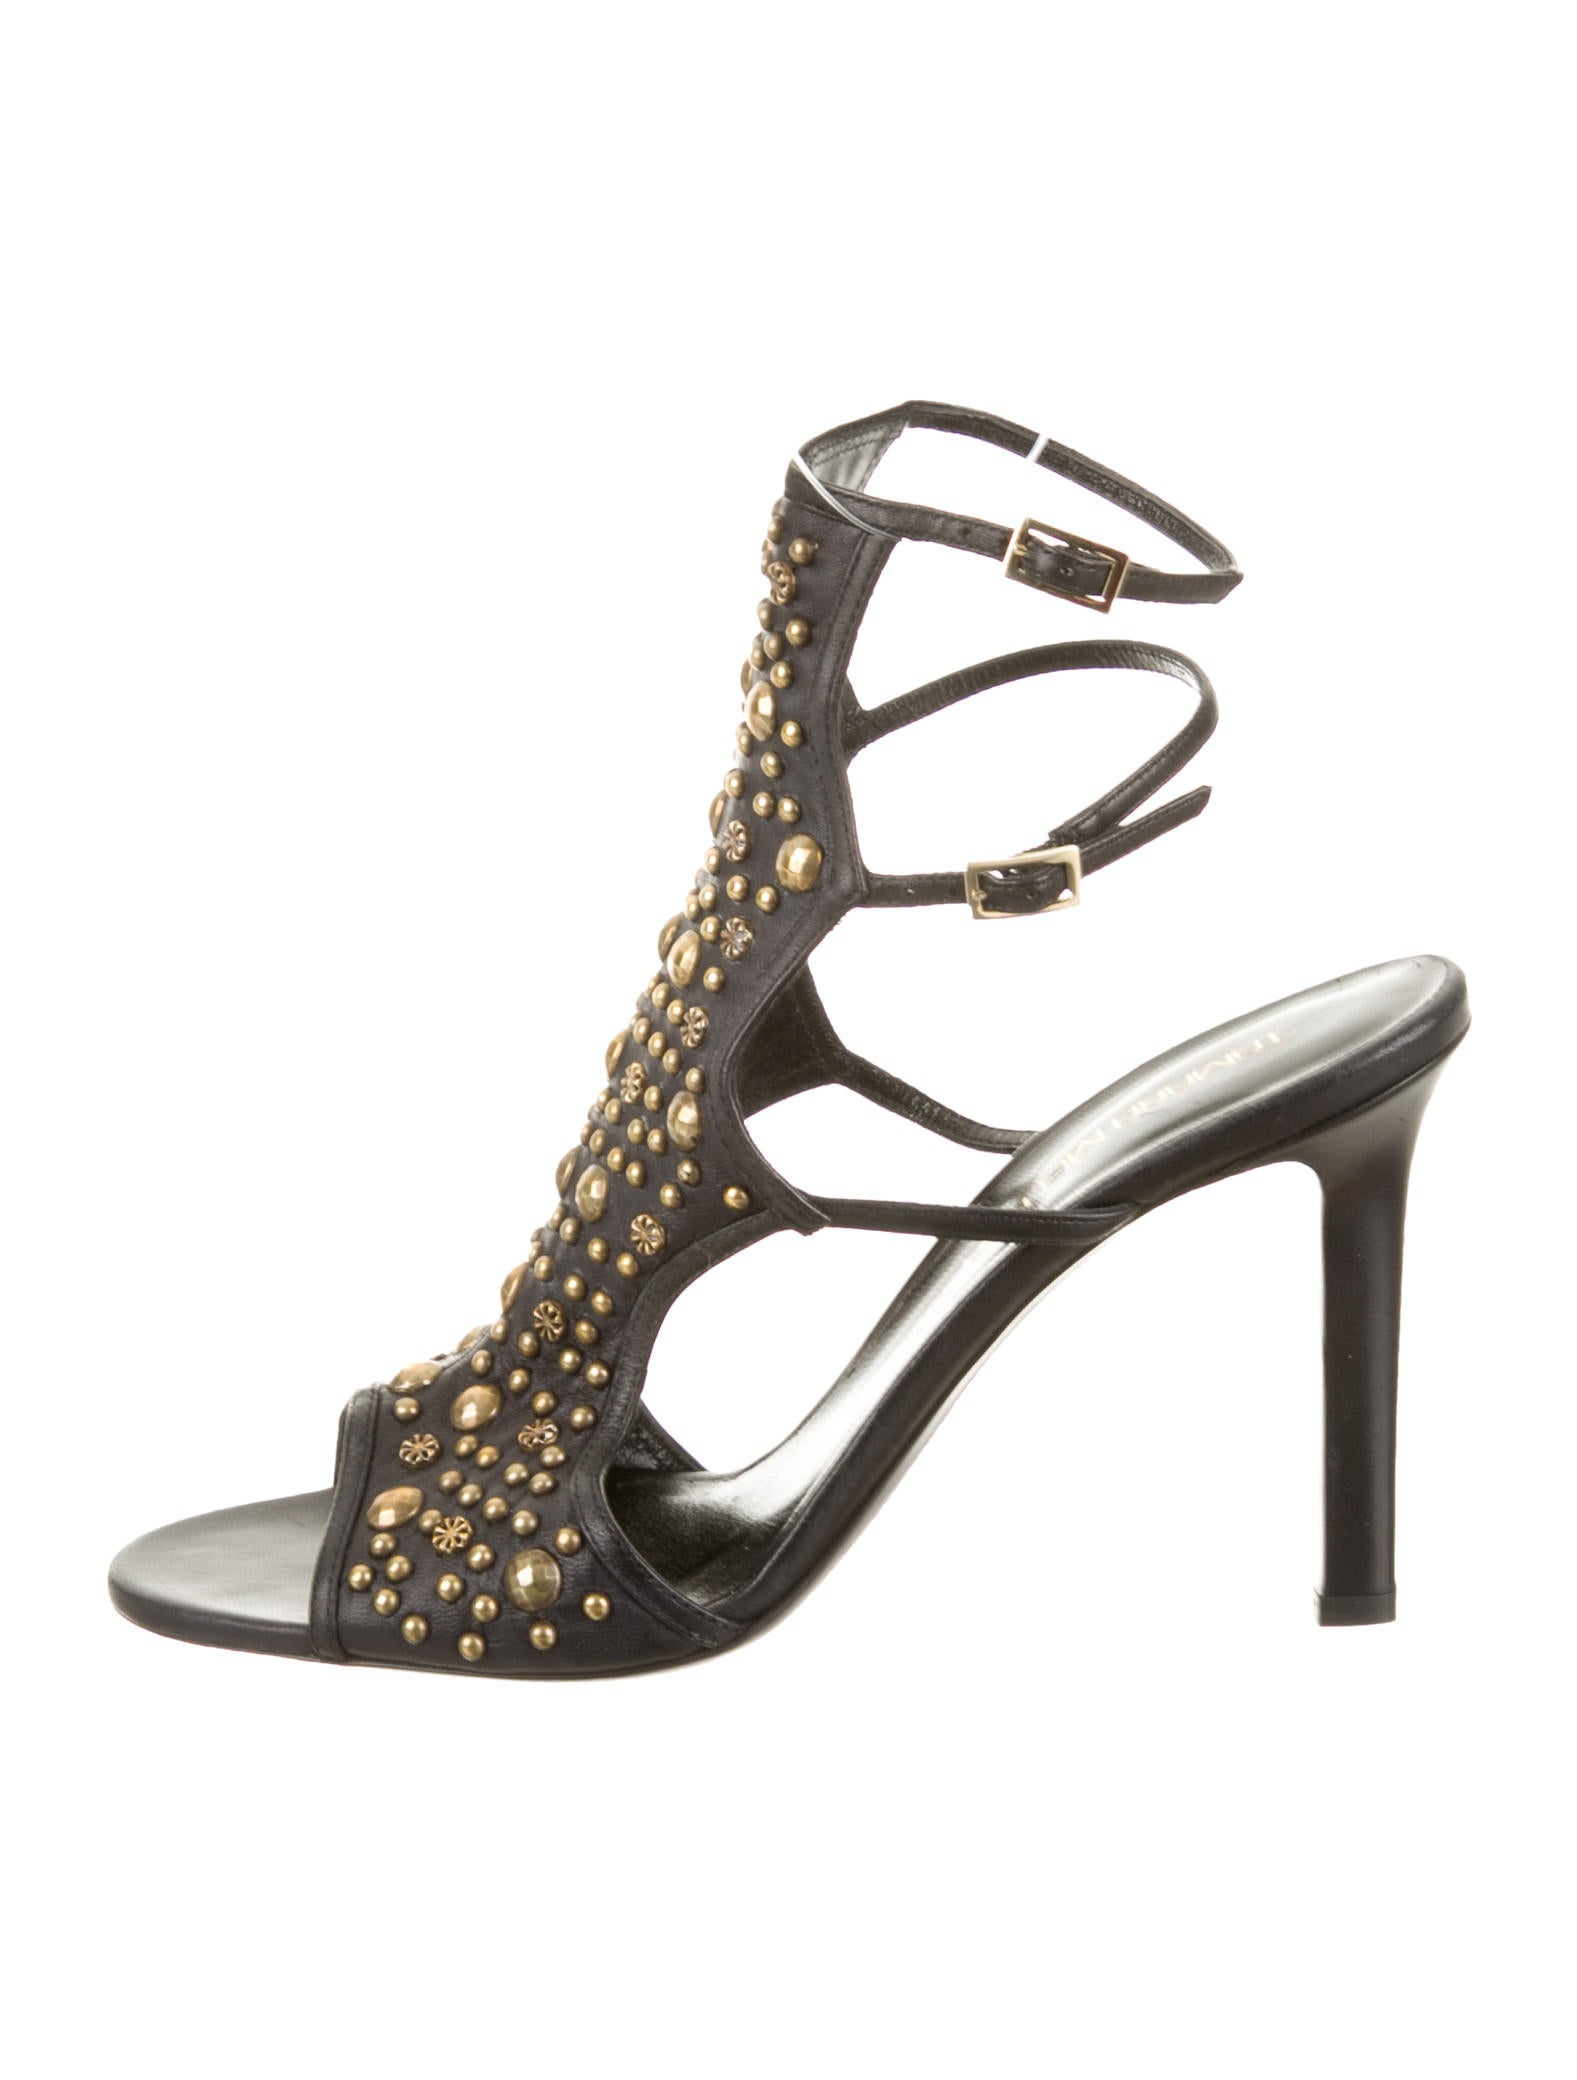 free shipping 2014 newest buy cheap price Tamara Mellon Stud Embellished Sandals clearance many kinds of amazing price WTkSBE